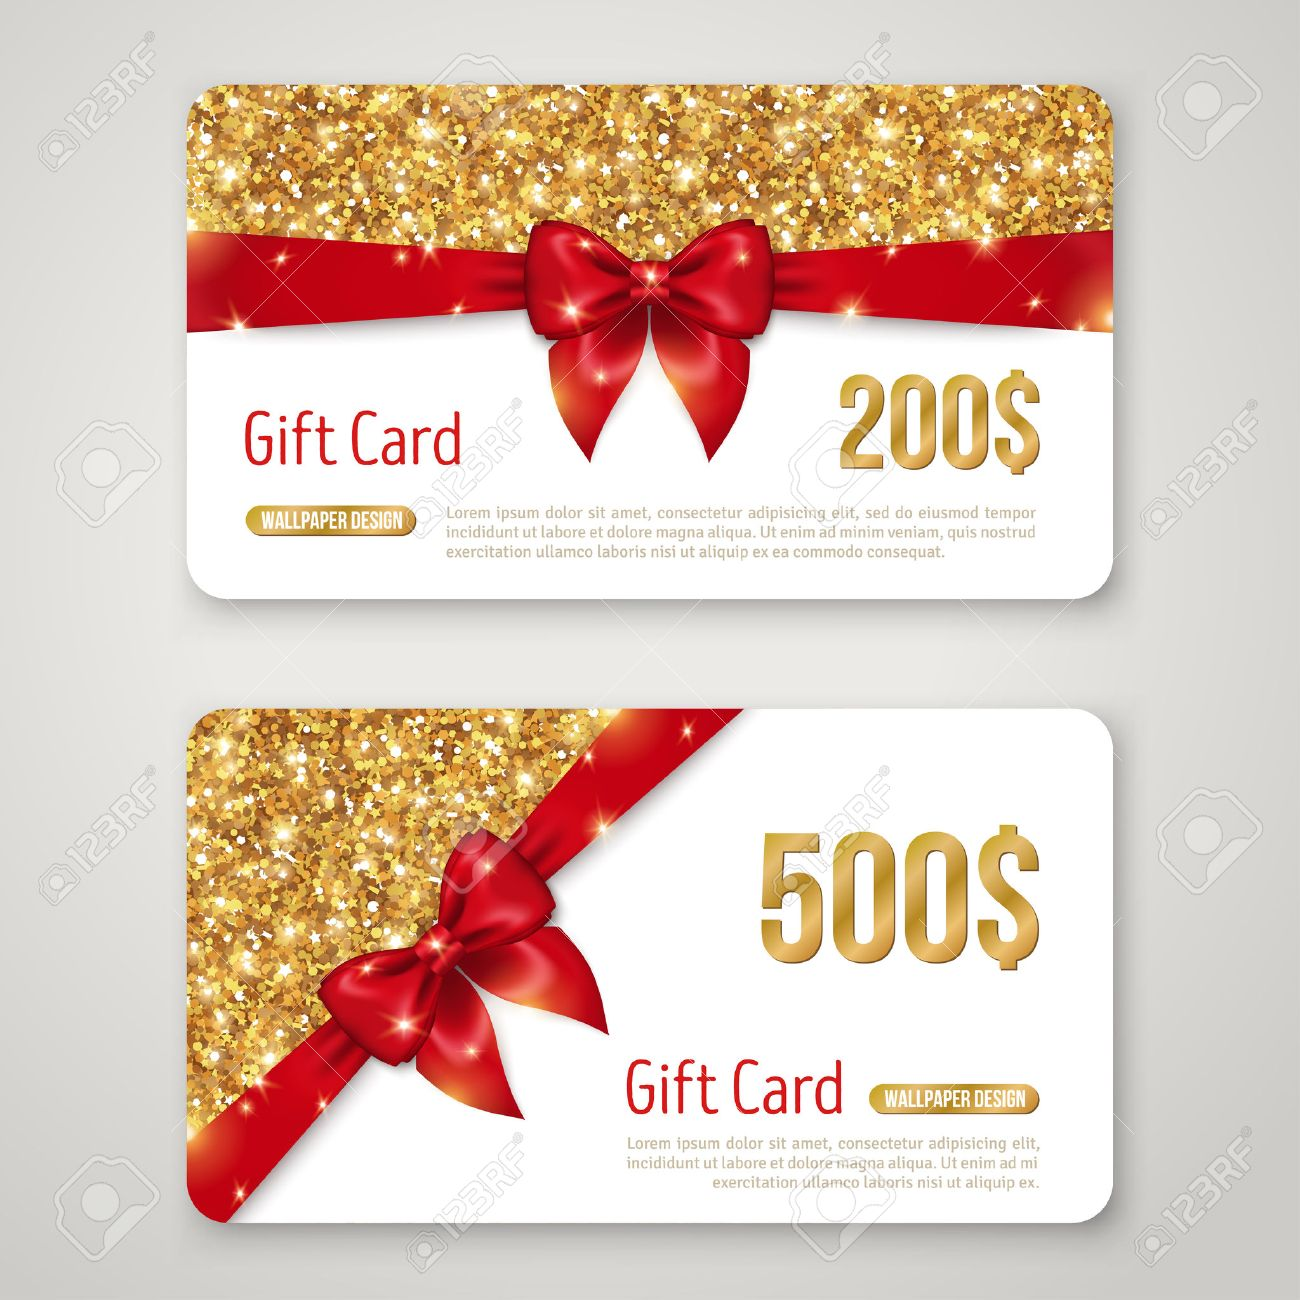 gift card design gold glitter texture and red bow invitation gift card design gold glitter texture and red bow invitation decorative card template